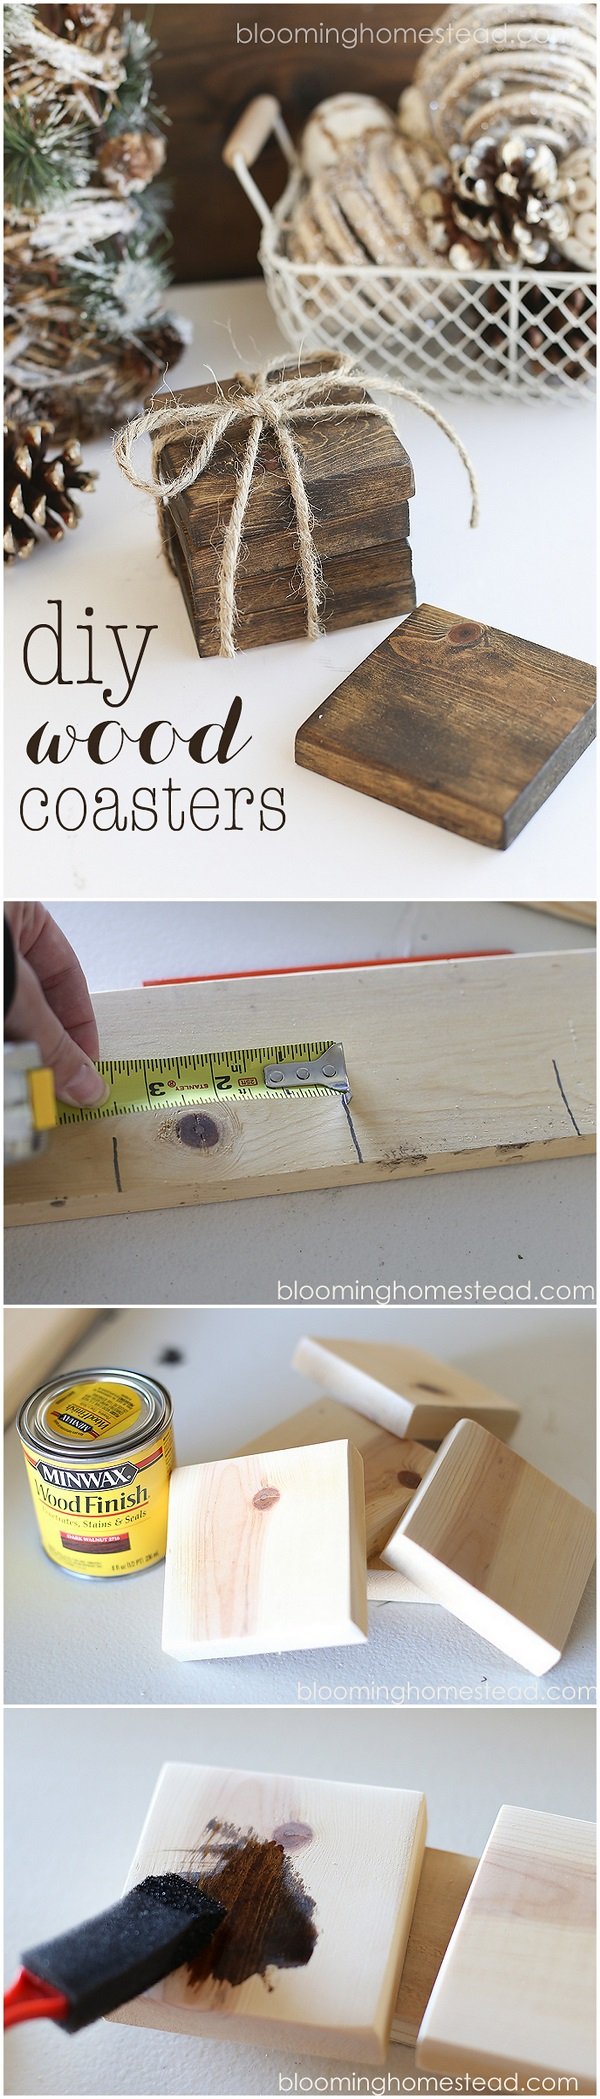 Check out this easy idea you can make and sell #DIY #wood coasters #crafts #project